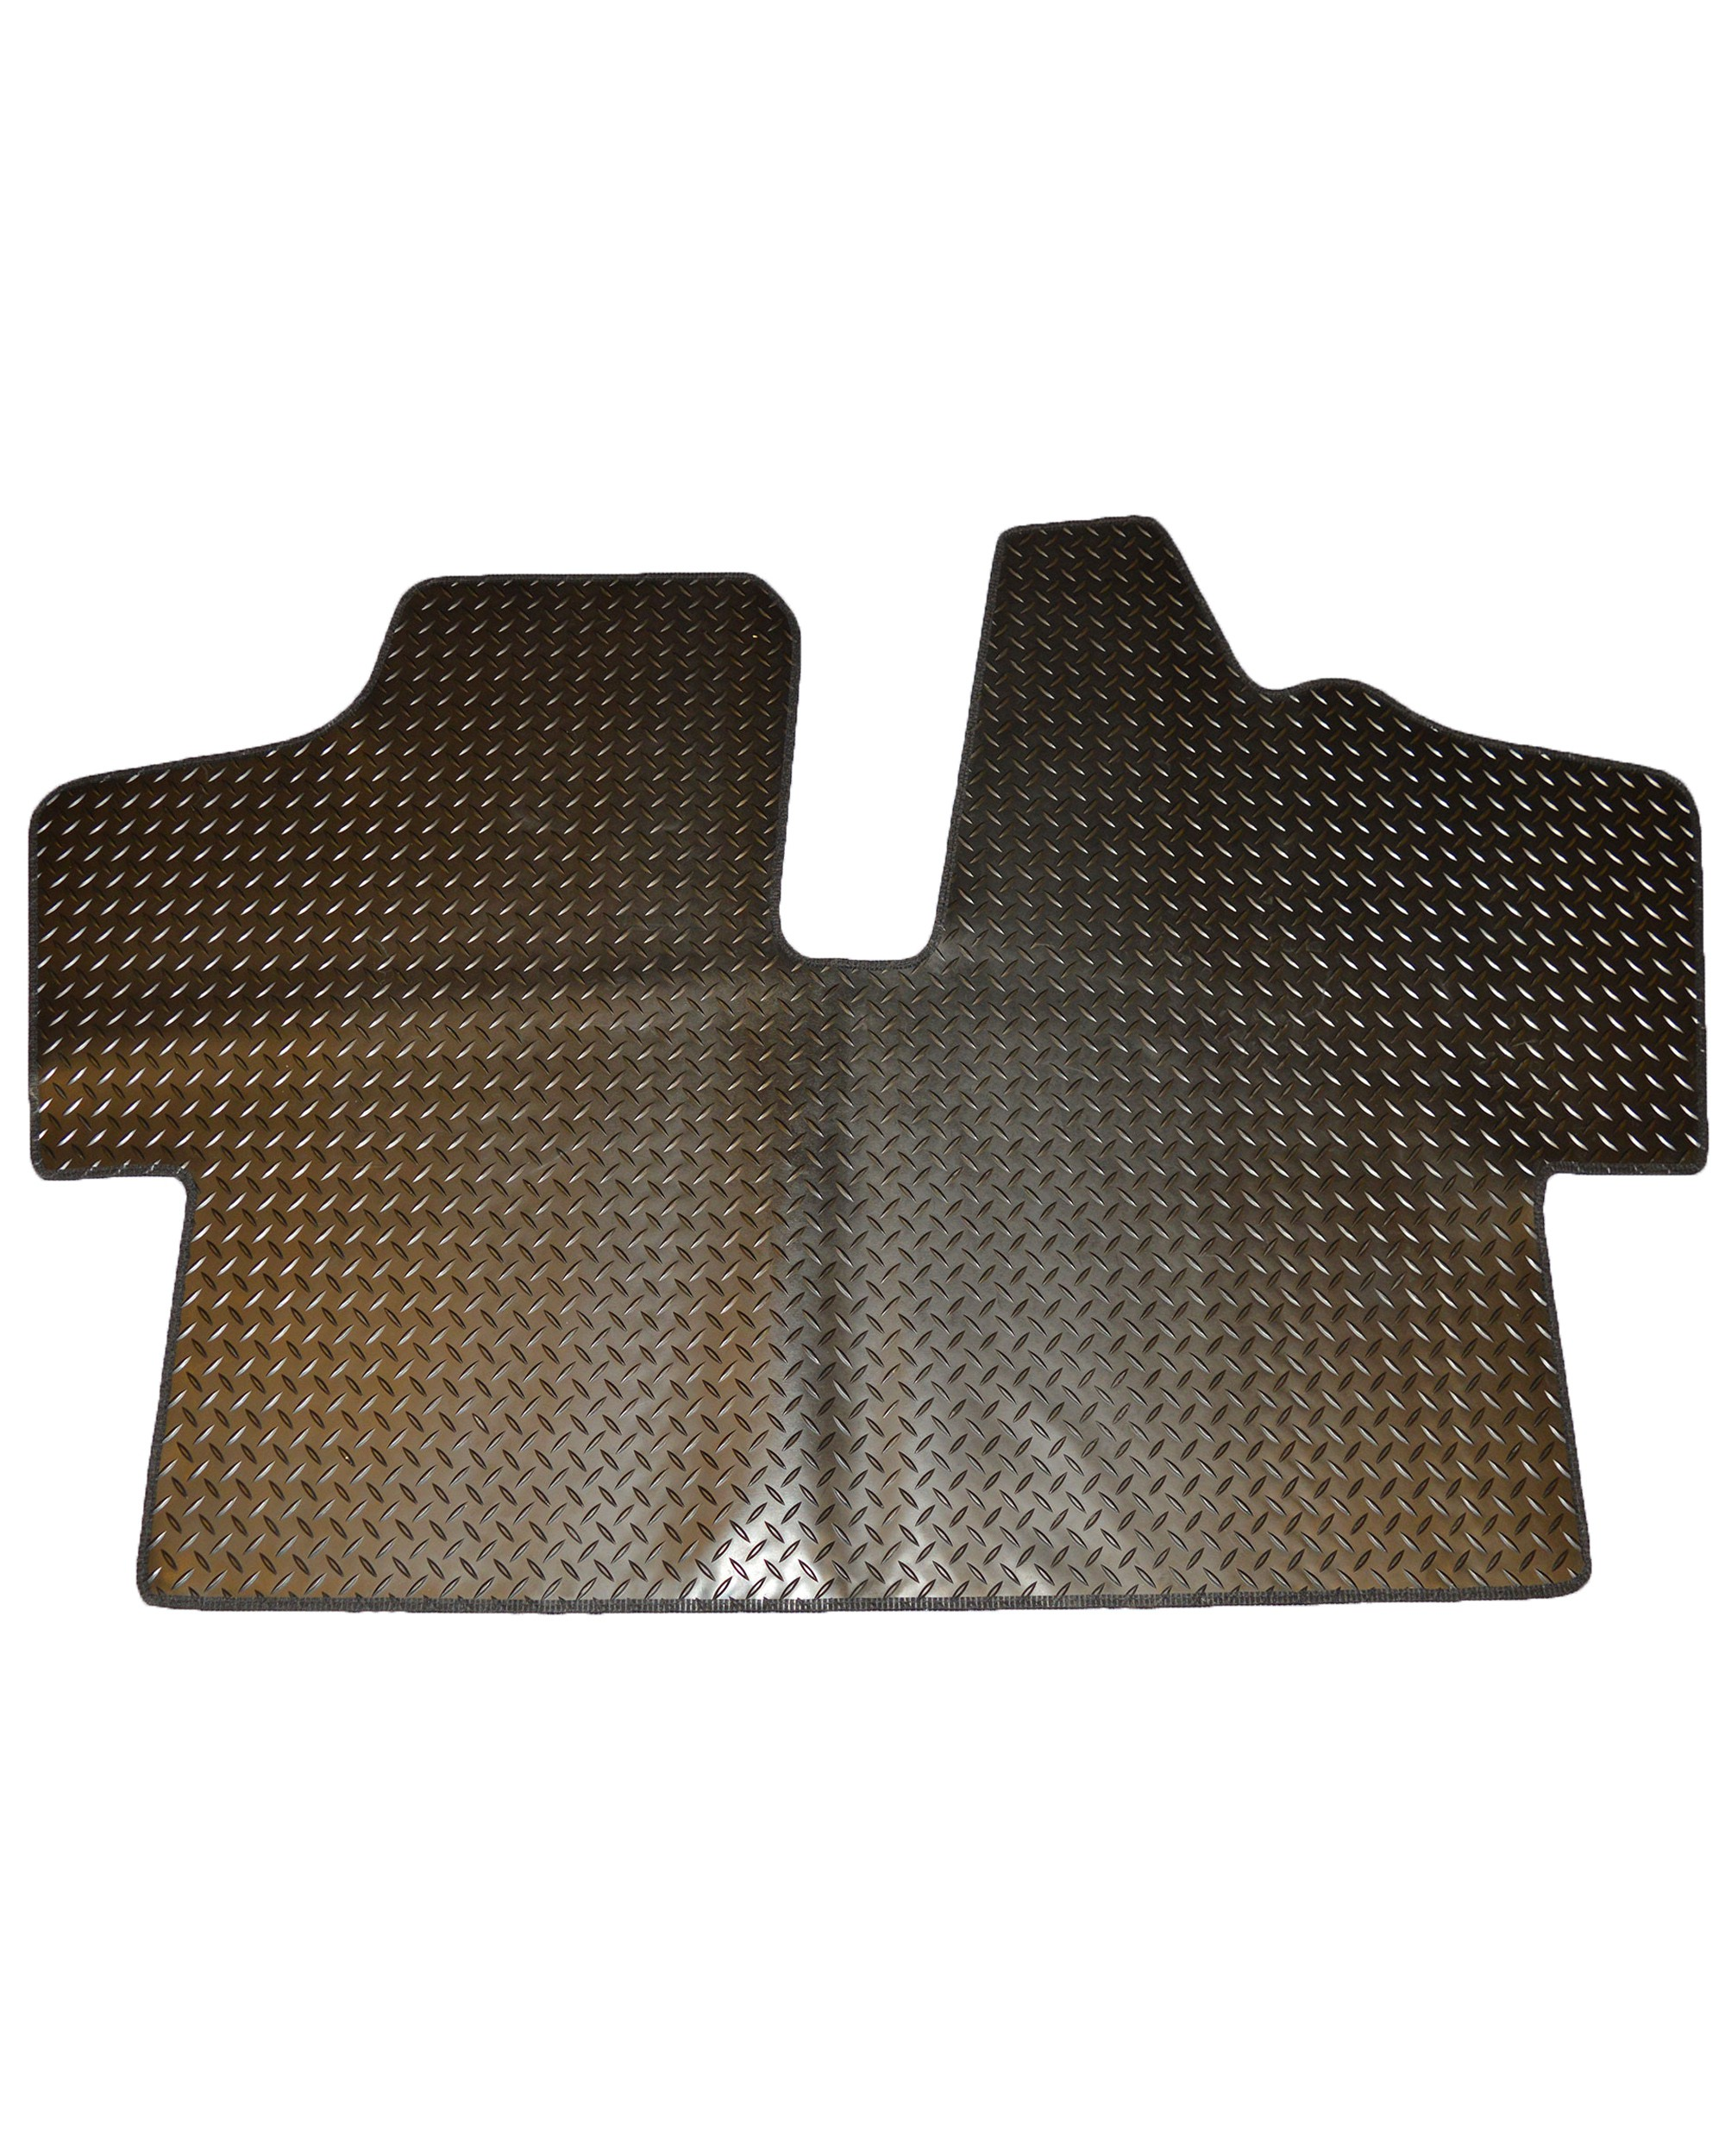 VW Transporter T5 front rubber floor mat